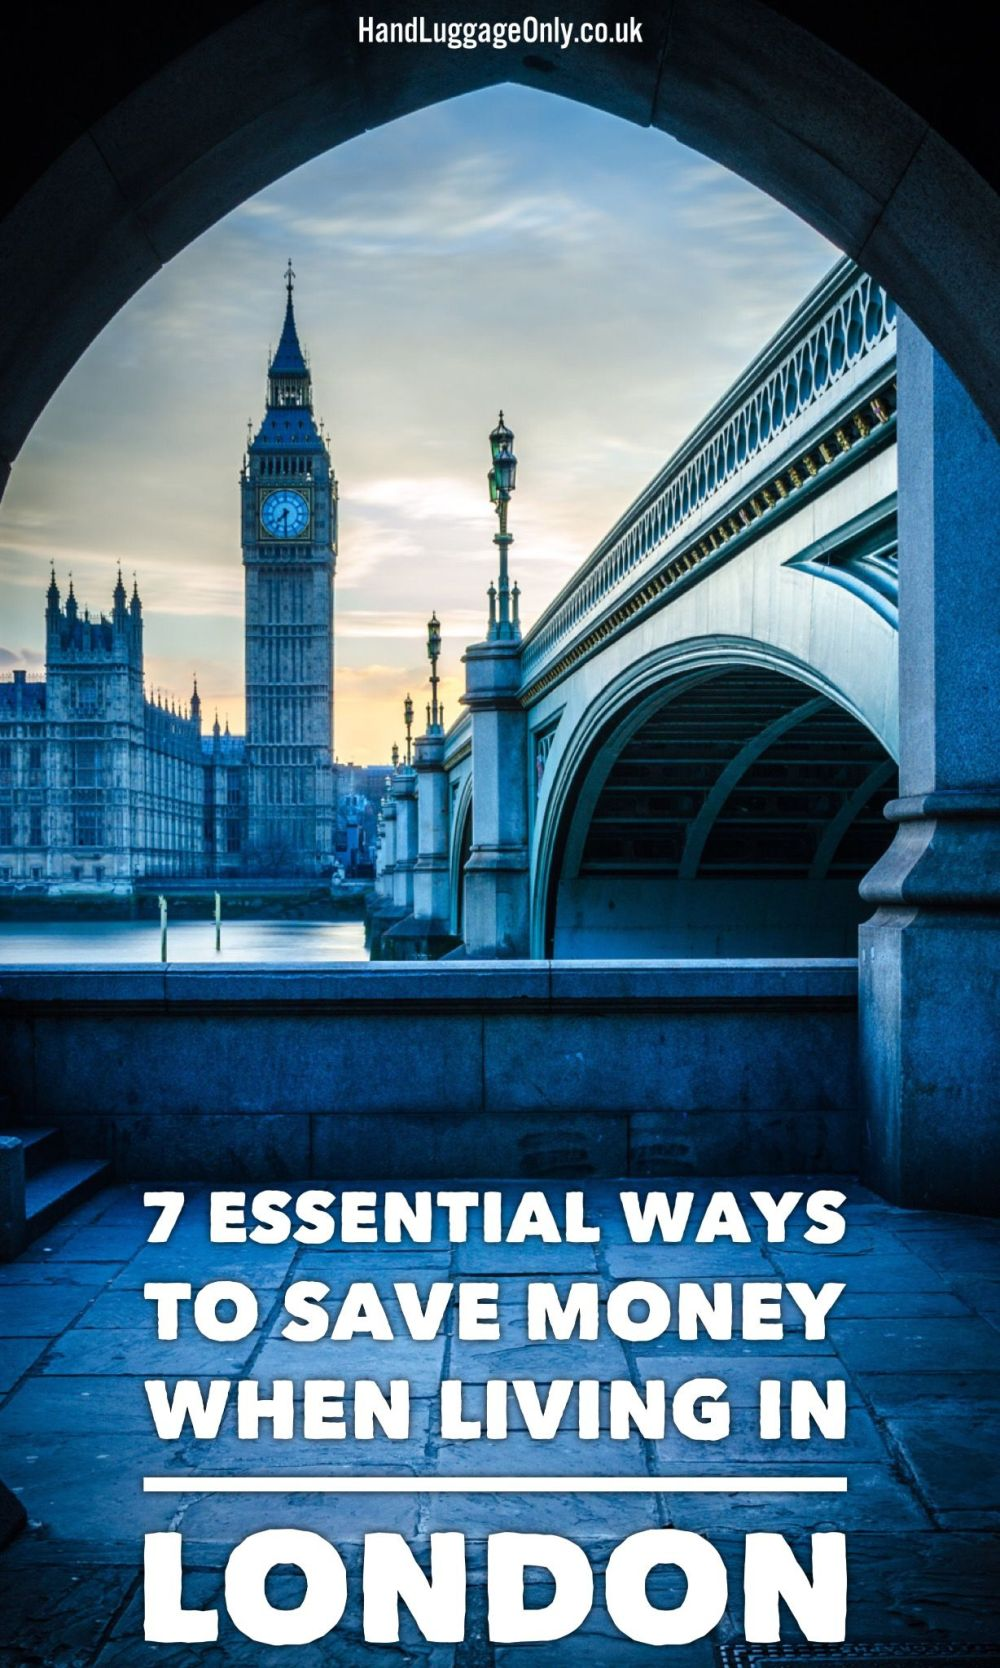 7 Ways To Save Money When Living In London That You Probably Haven't Thought Of!